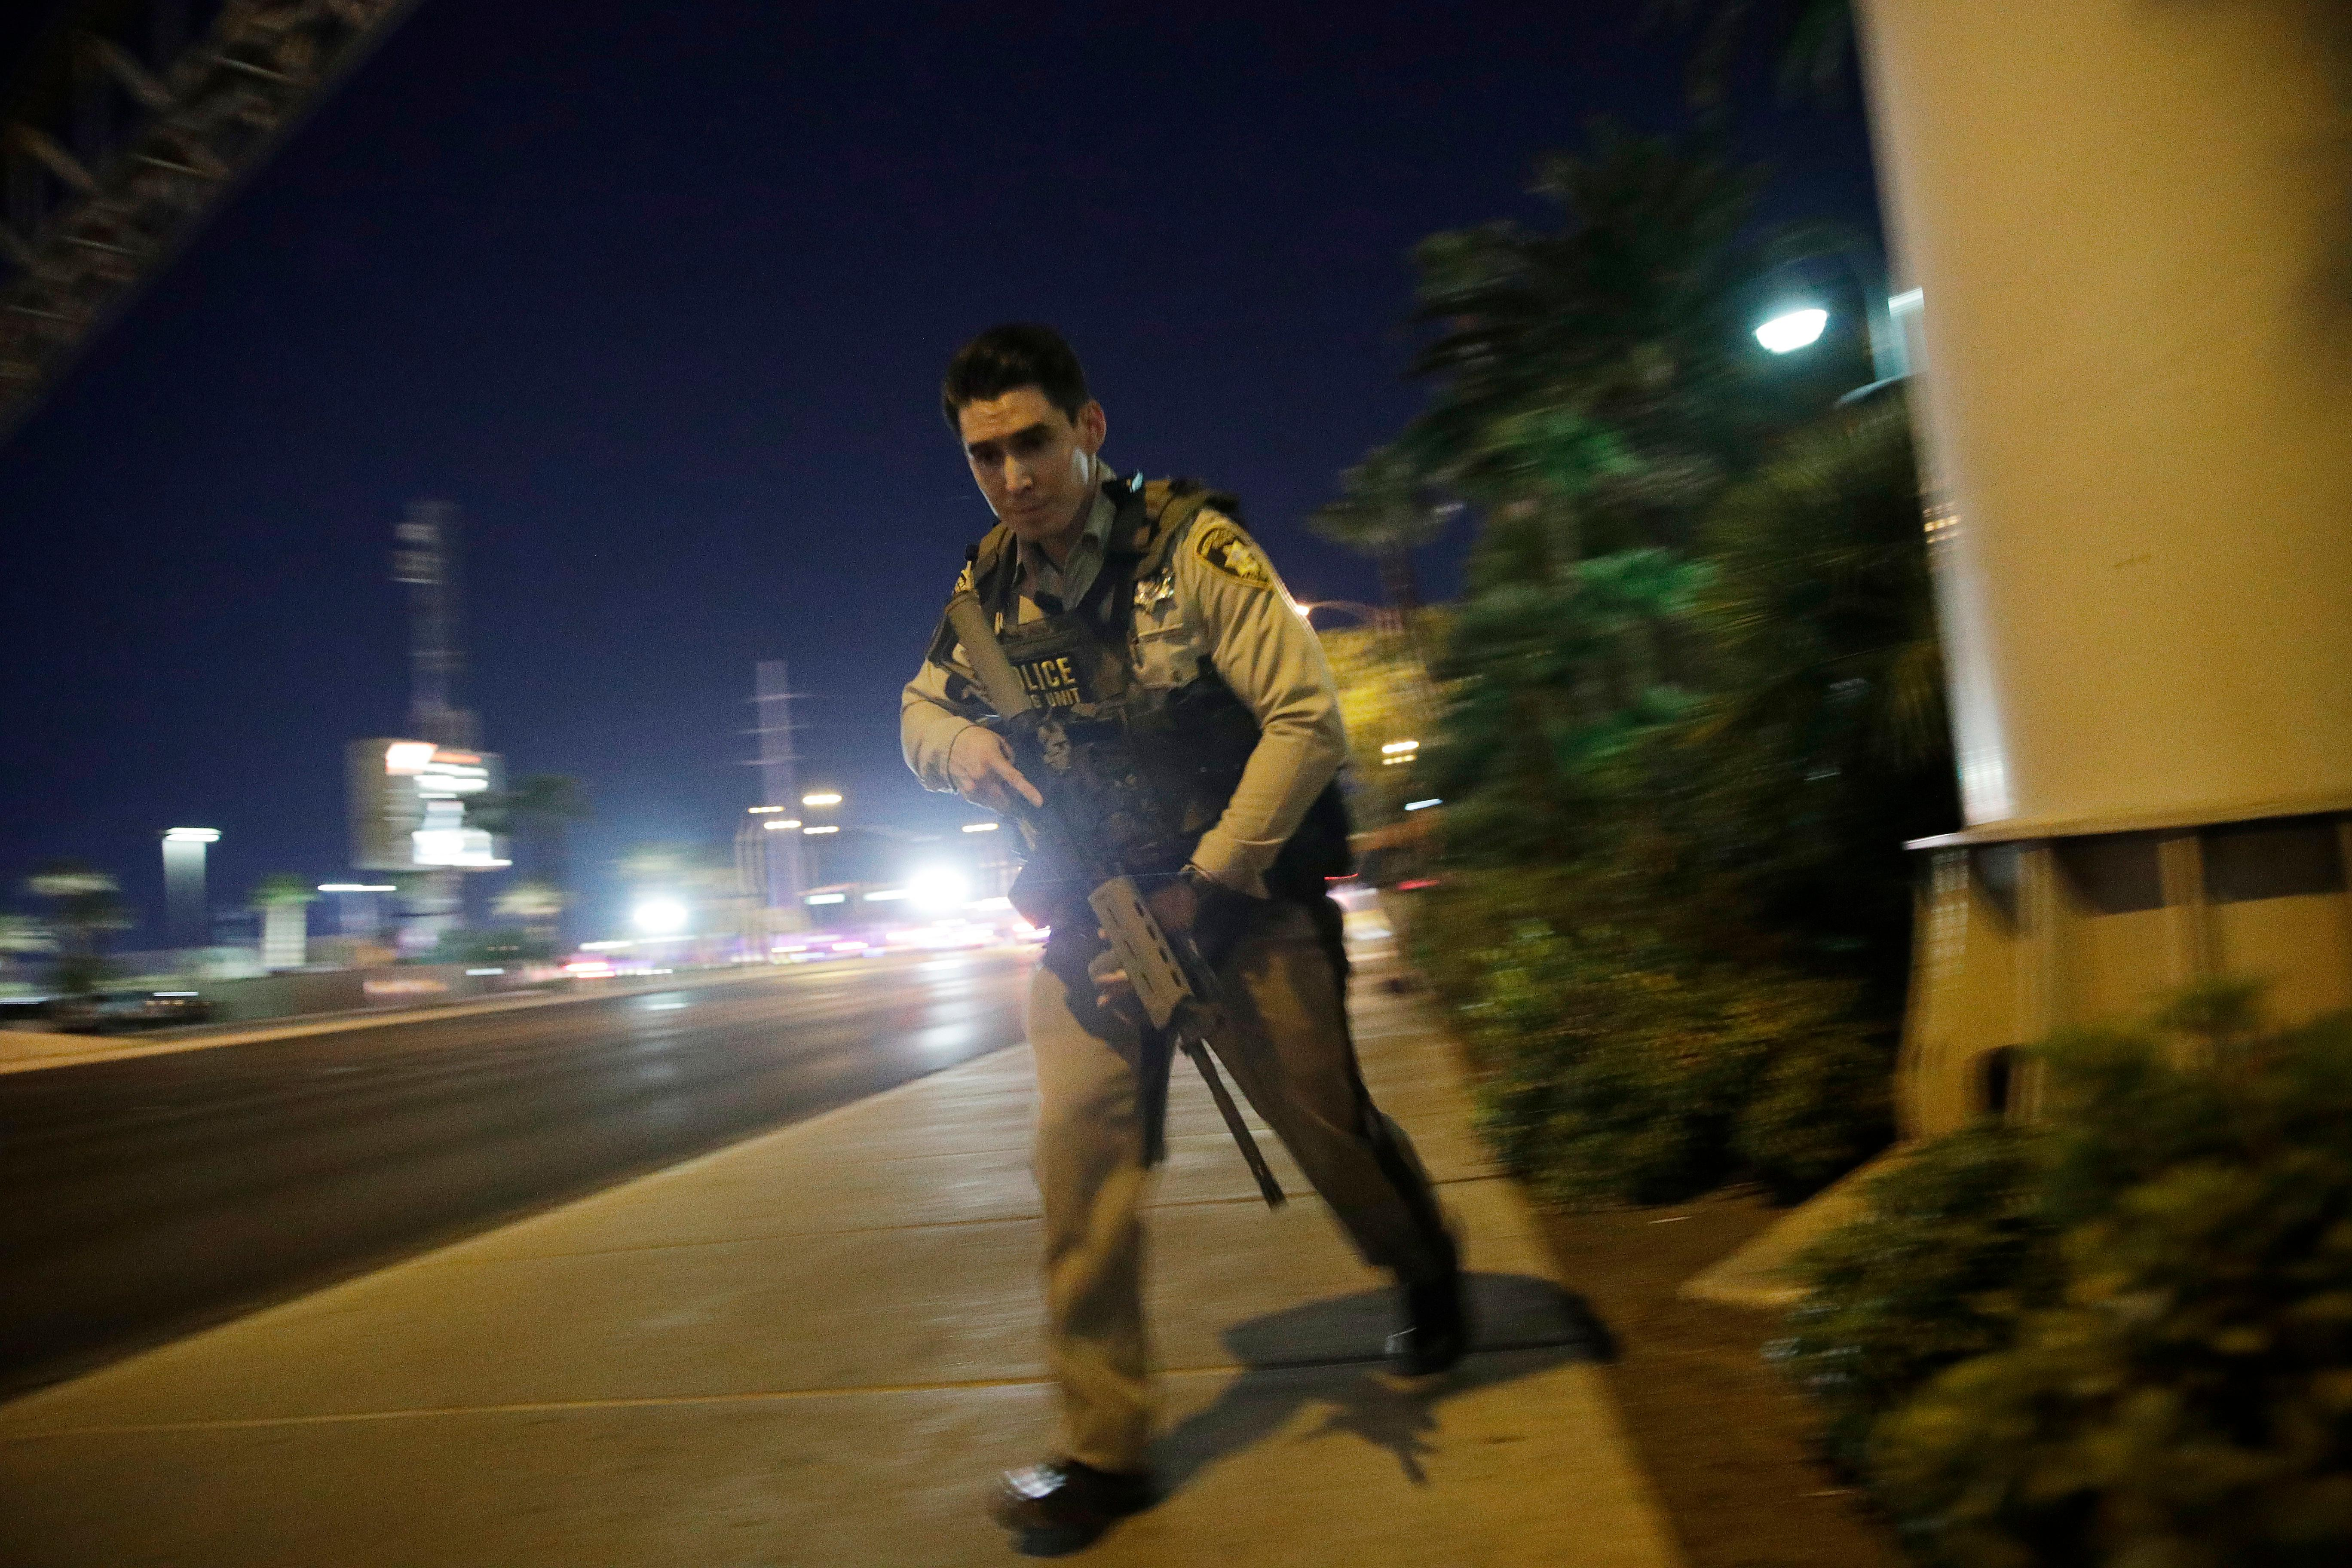 A police officer runs along a sidewalk near a shooting near the Mandalay Bay resort and casino on the Las Vegas Strip, Sunday, Oct. 1, 2017, in Las Vegas. (AP Photo/John Locher)